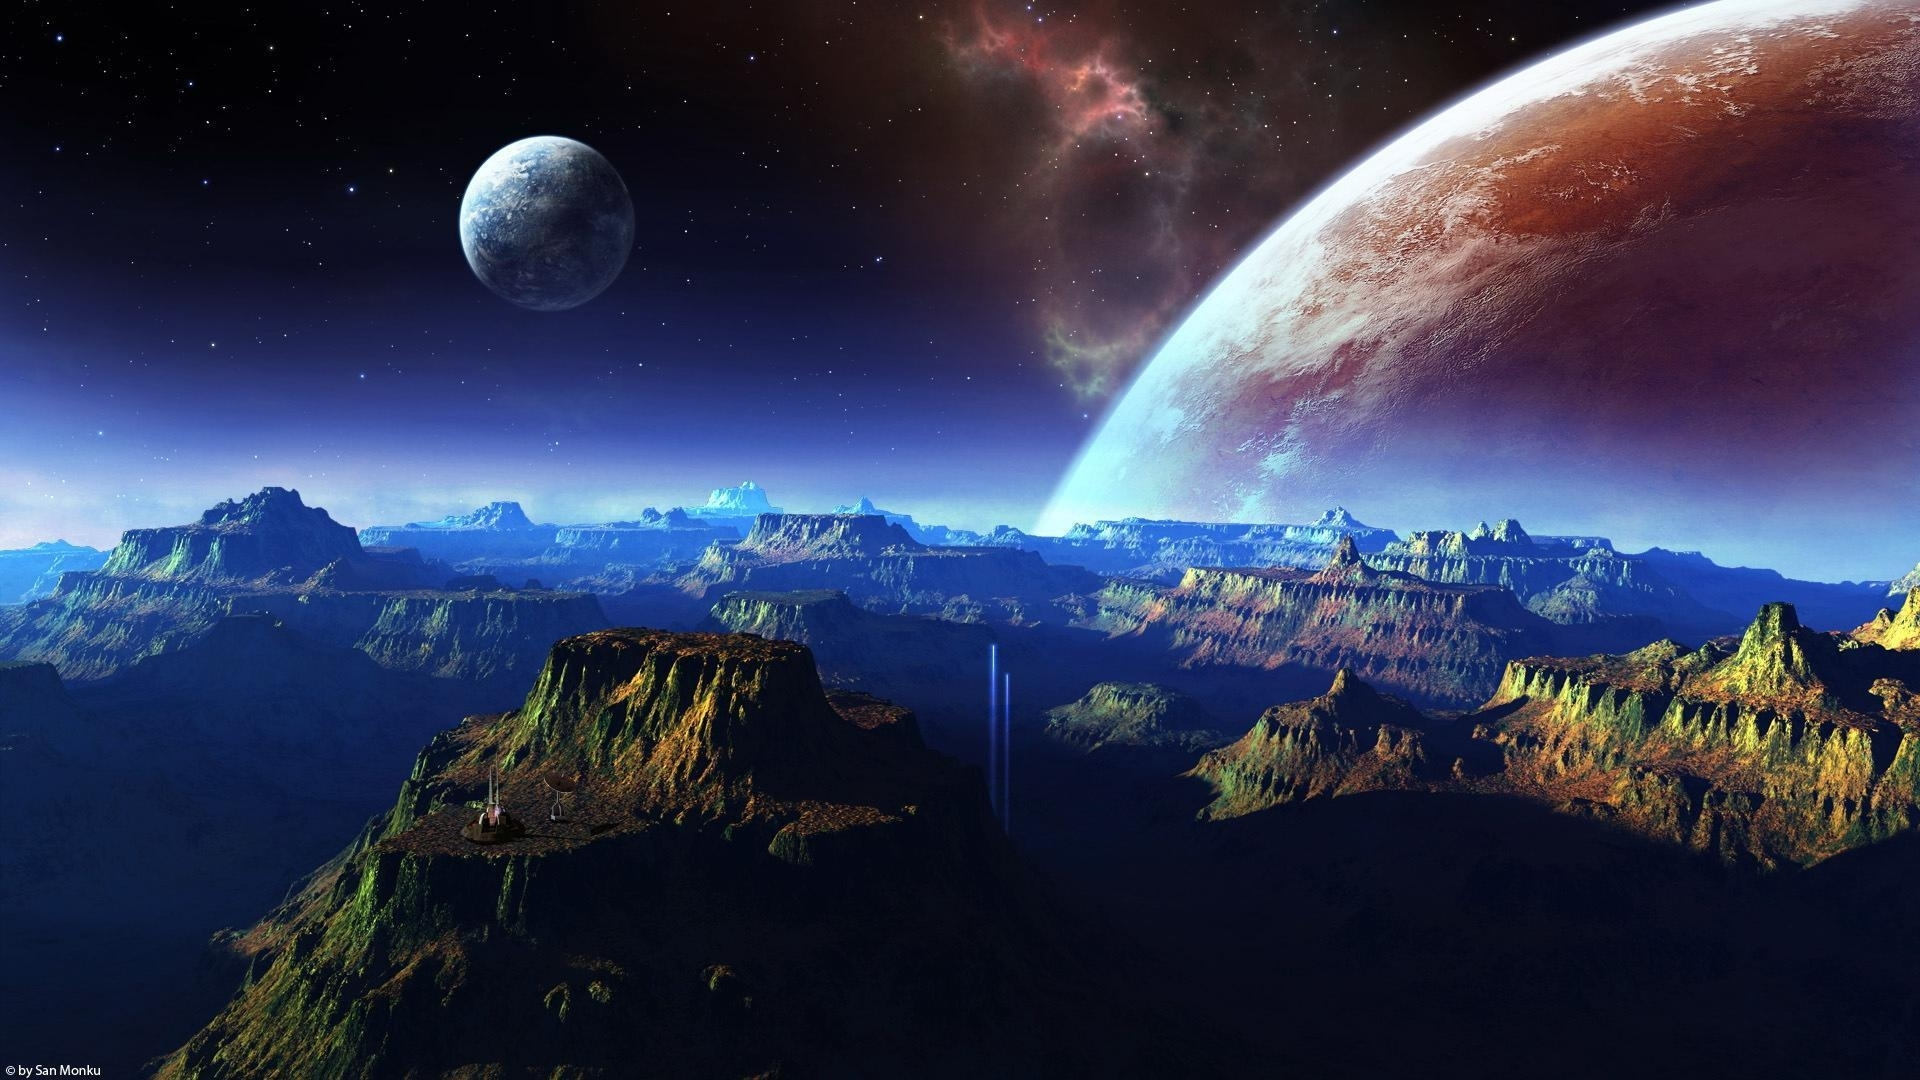 space hd wallpapers 1080p - wallpaper cave